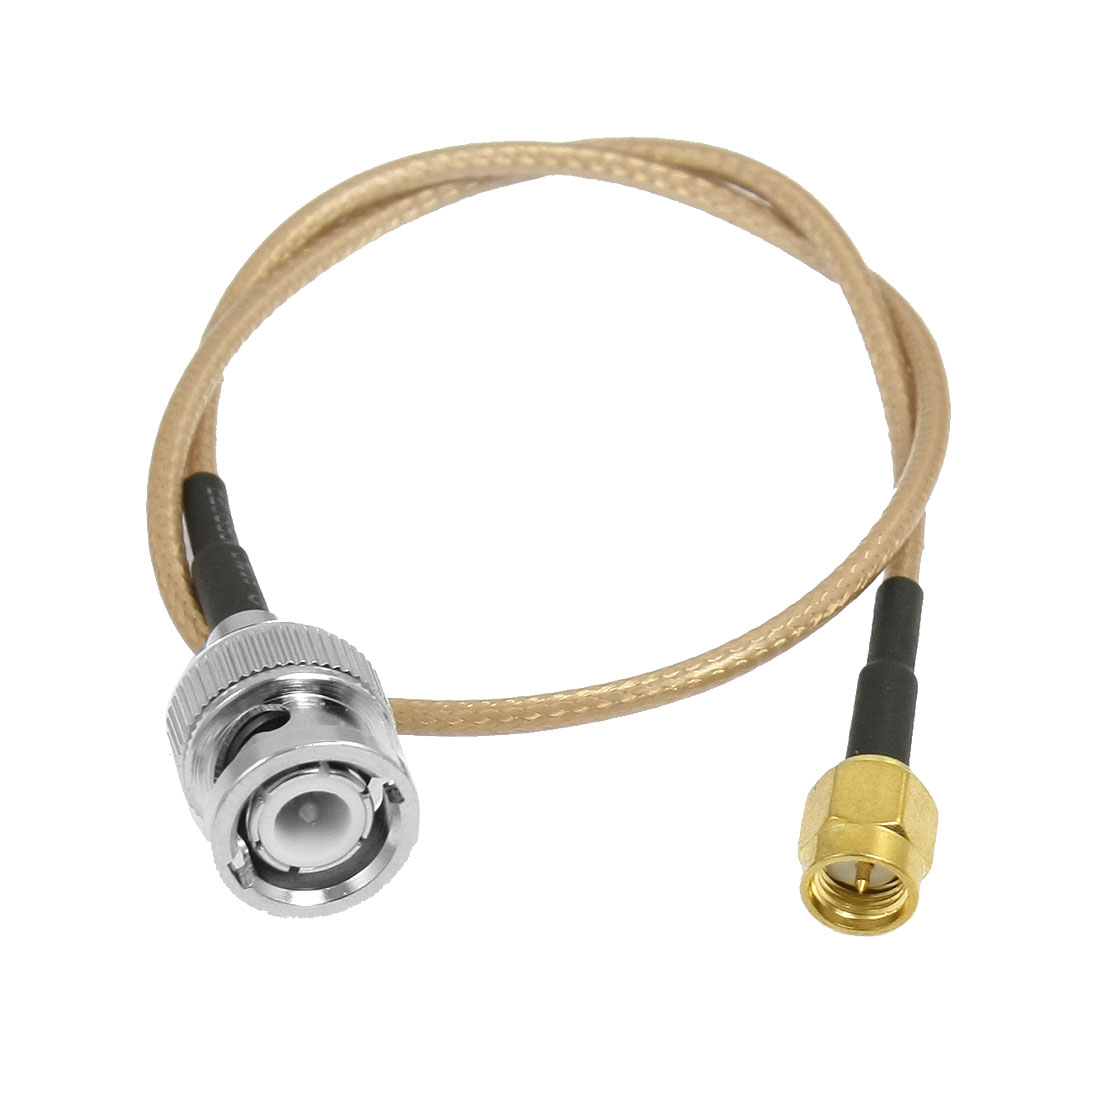 "SMA Male to BNC Male Antenna Coax Pigtail Adapter Connector Cable 13.4"" Long"